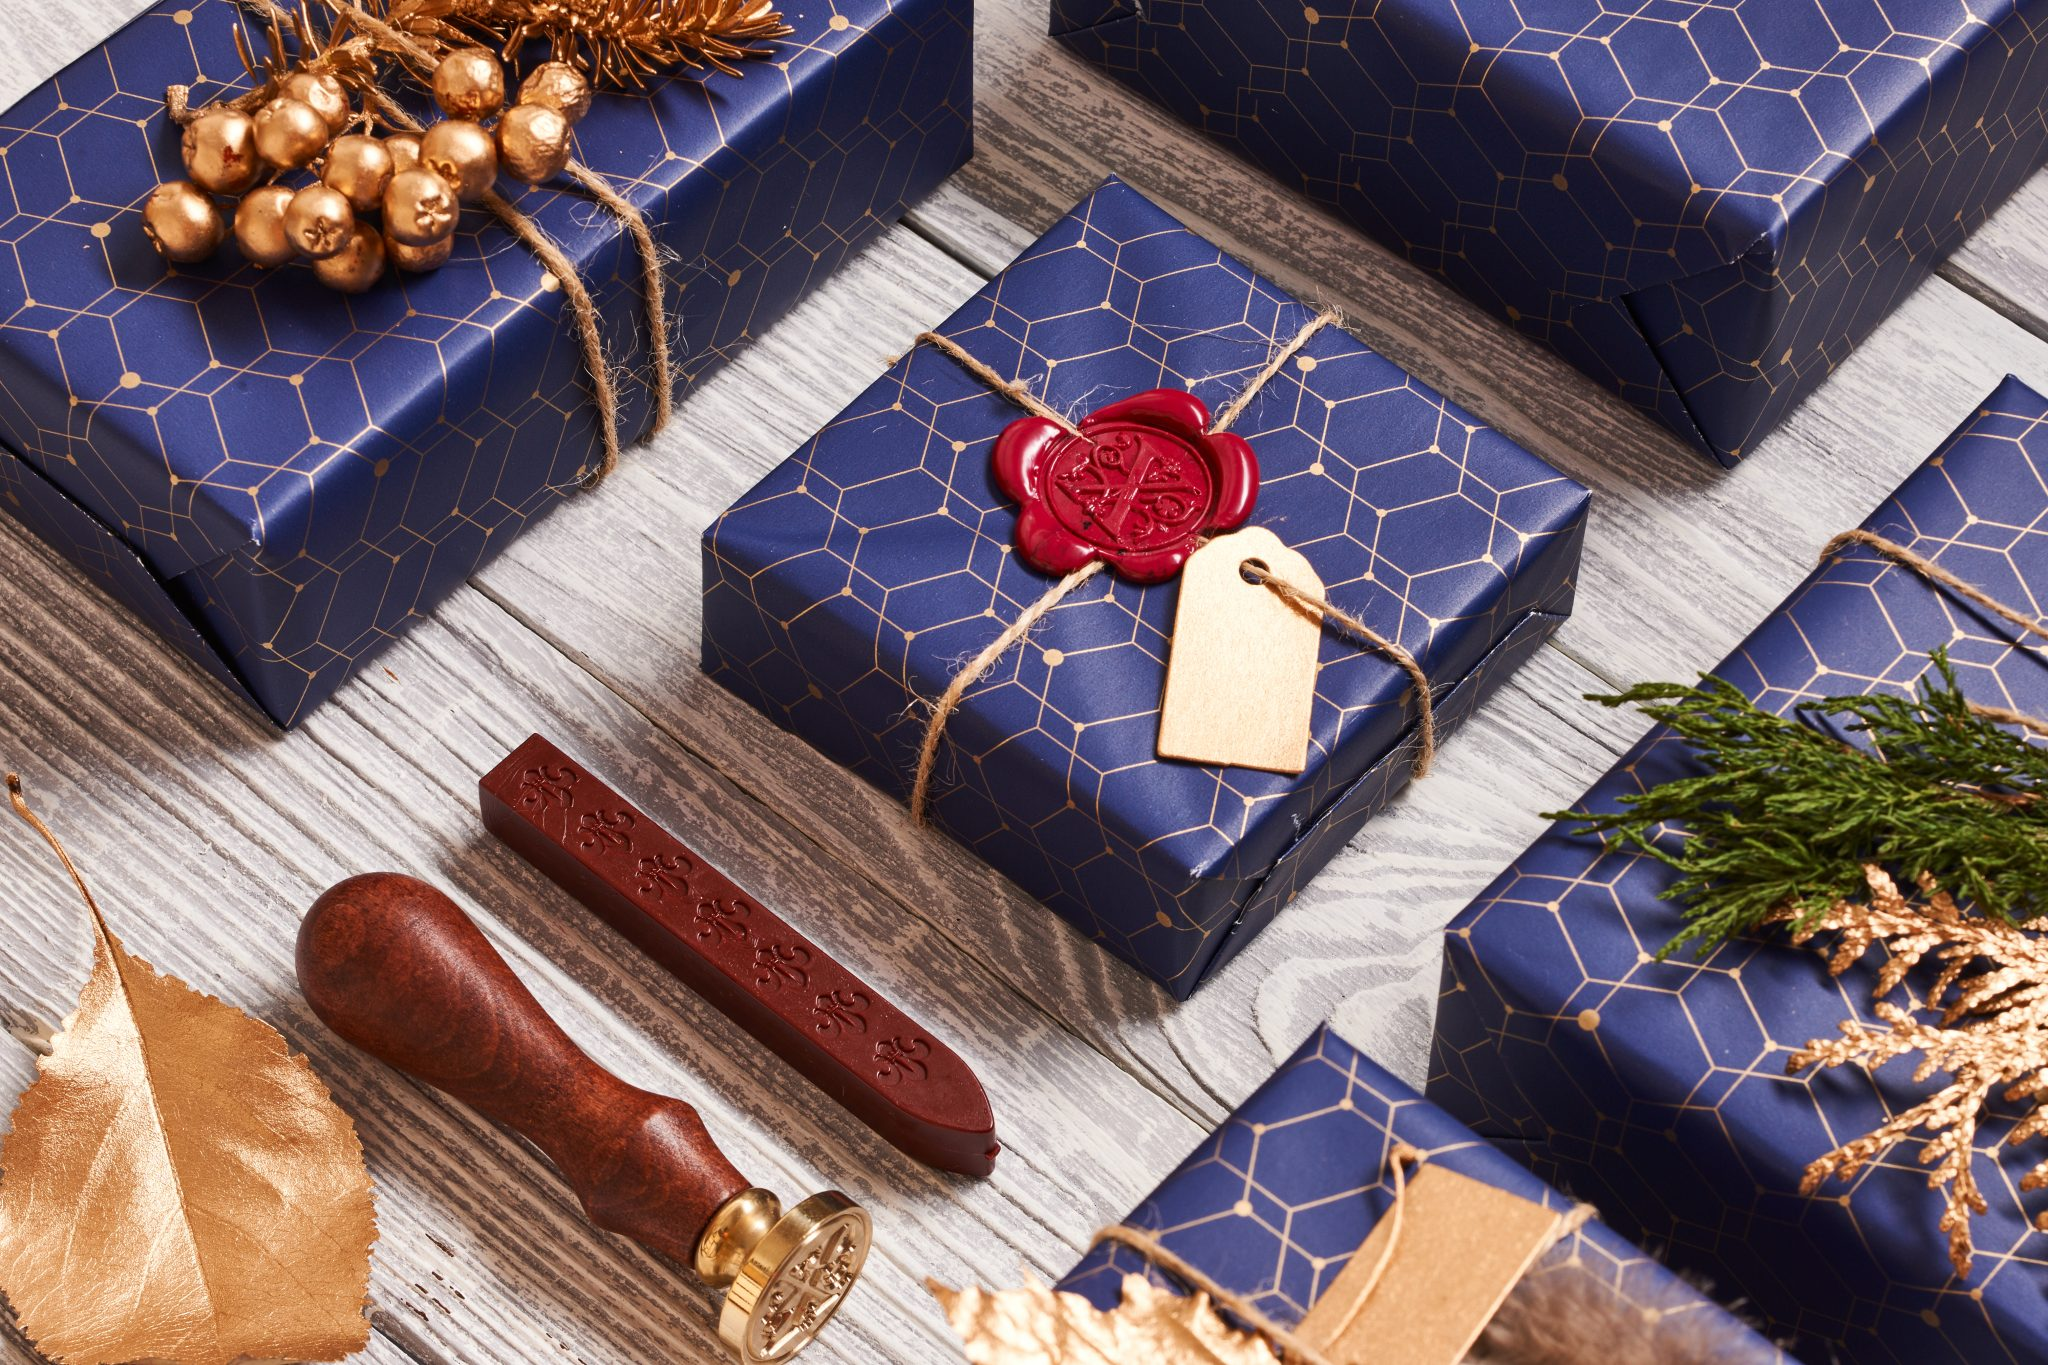 Are you having a Secret Santa party? If the person you've drawn loves to travel, click here for 40 Secret Santa gift ideas under $40!